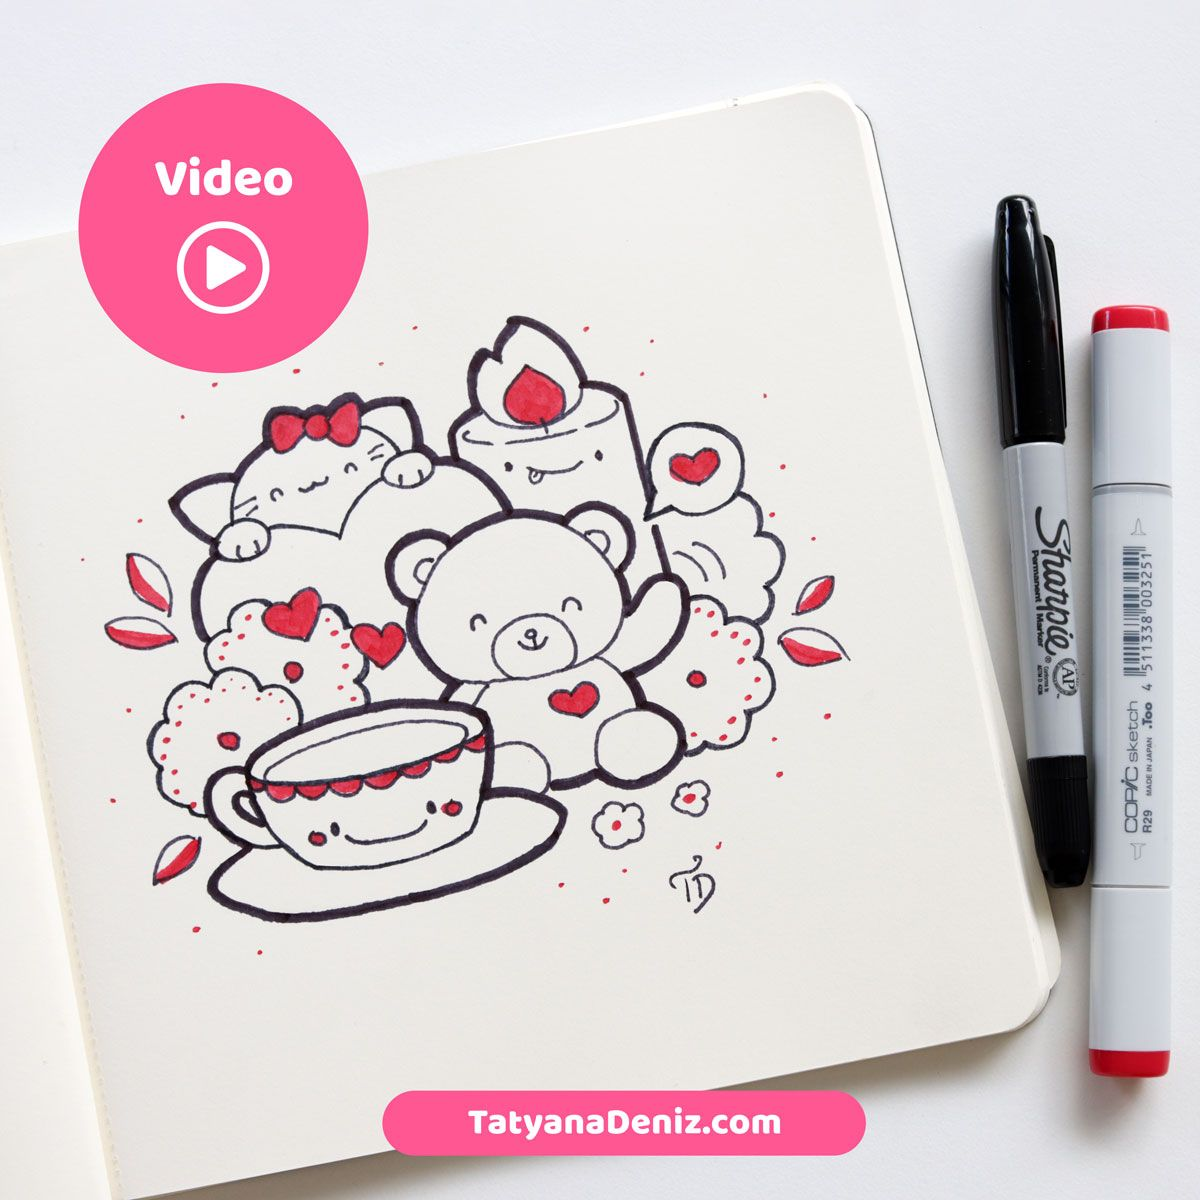 Watch my my complete drawing process as I draw this kawaii doodle for Valentine's Day step-by-step. This video is mesmerizing to watch... lots of fun! Plus, pick up a few drawing tips and tricks for YOUR drawings. Kawaii art and video by Tatyana Deniz - TatyanaDeniz.com #kawaiiart #kawaiidoodle #kawaiidrawing #tatyanadeniz #howtodraw #speedart #video via @tatyanadeniz